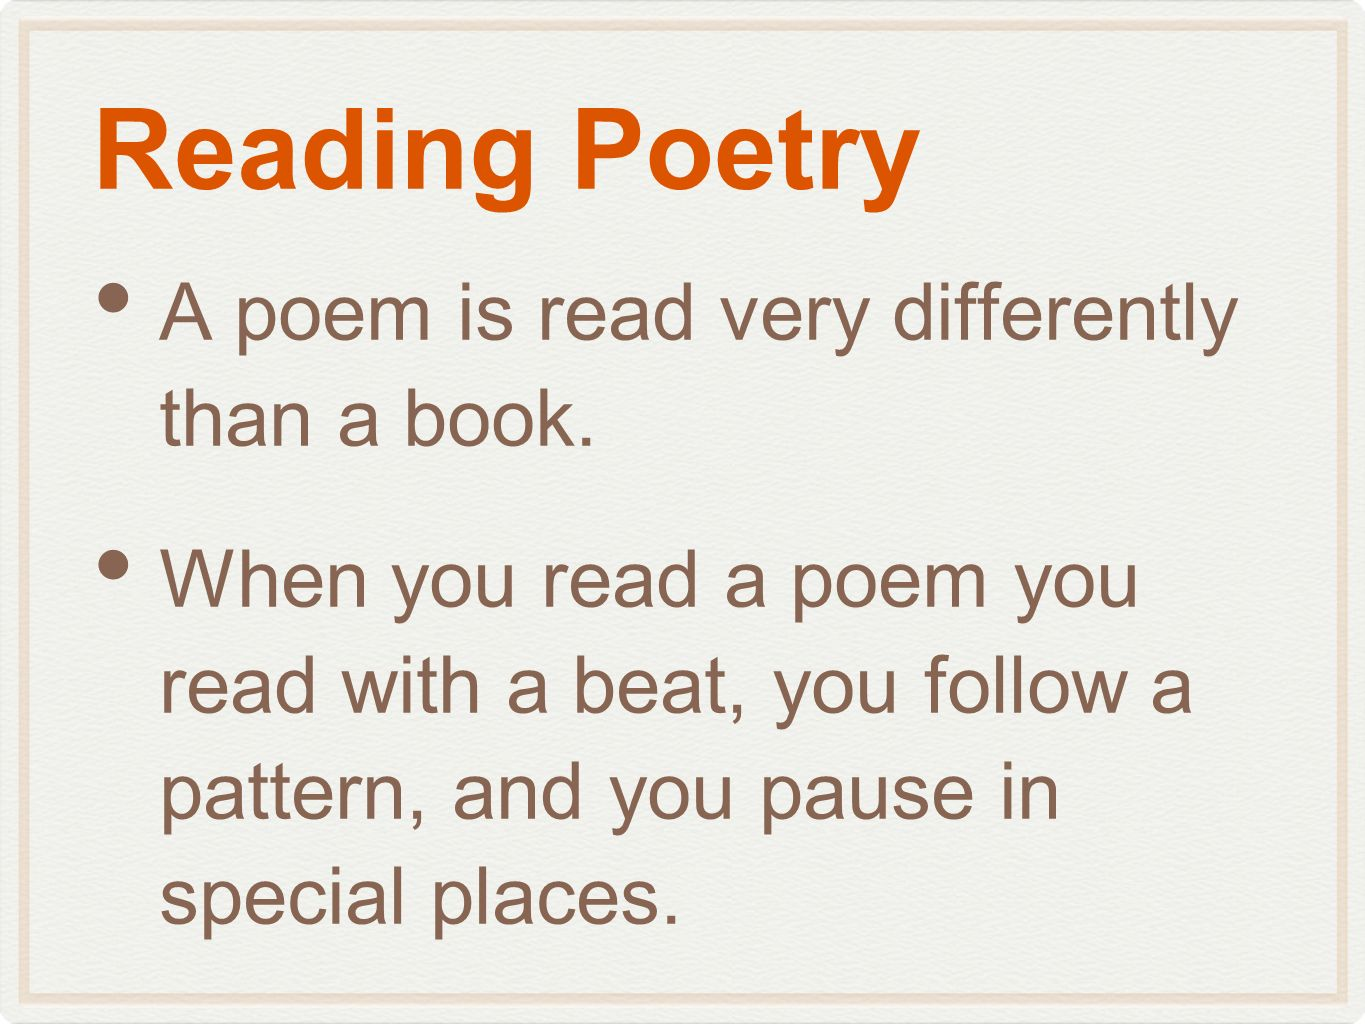 Reading Poetry A poem is read very differently than a book.